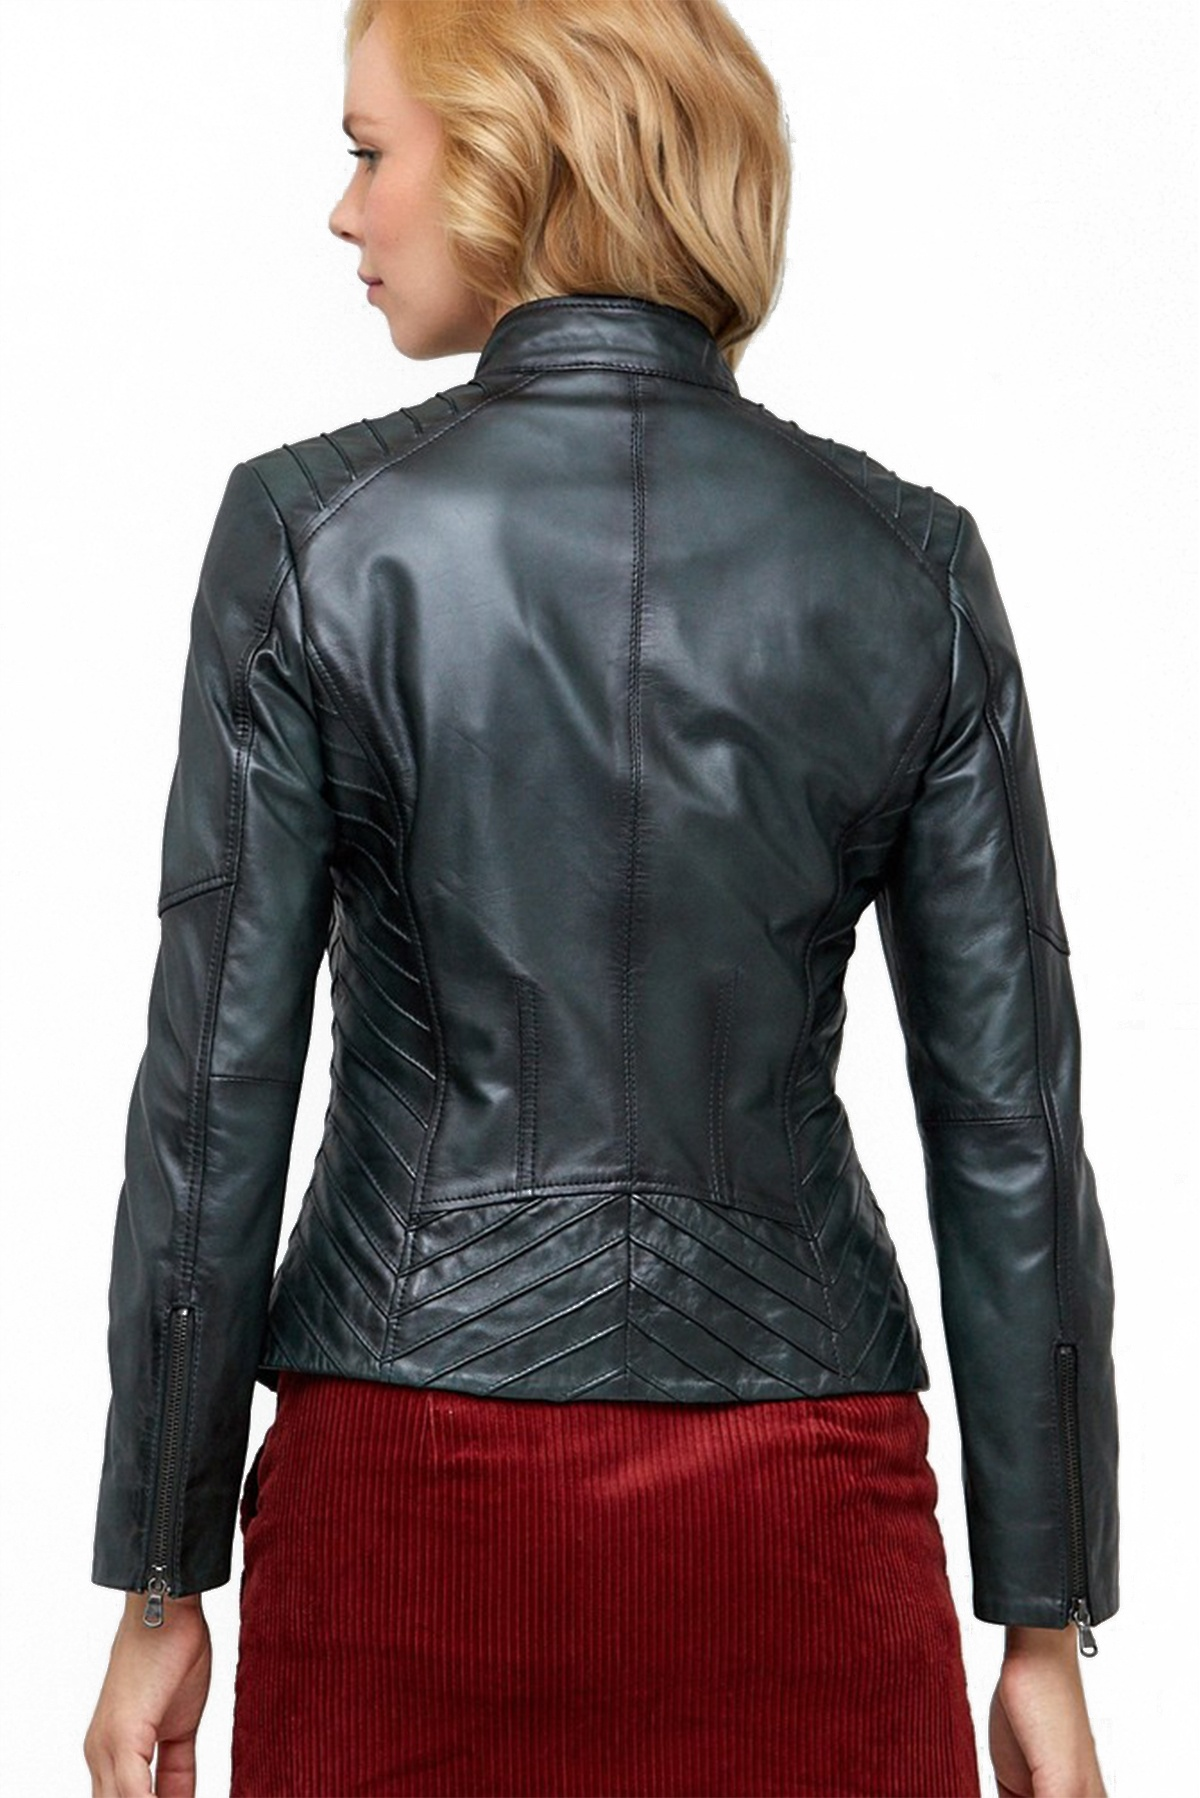 real leather jackets womens sale